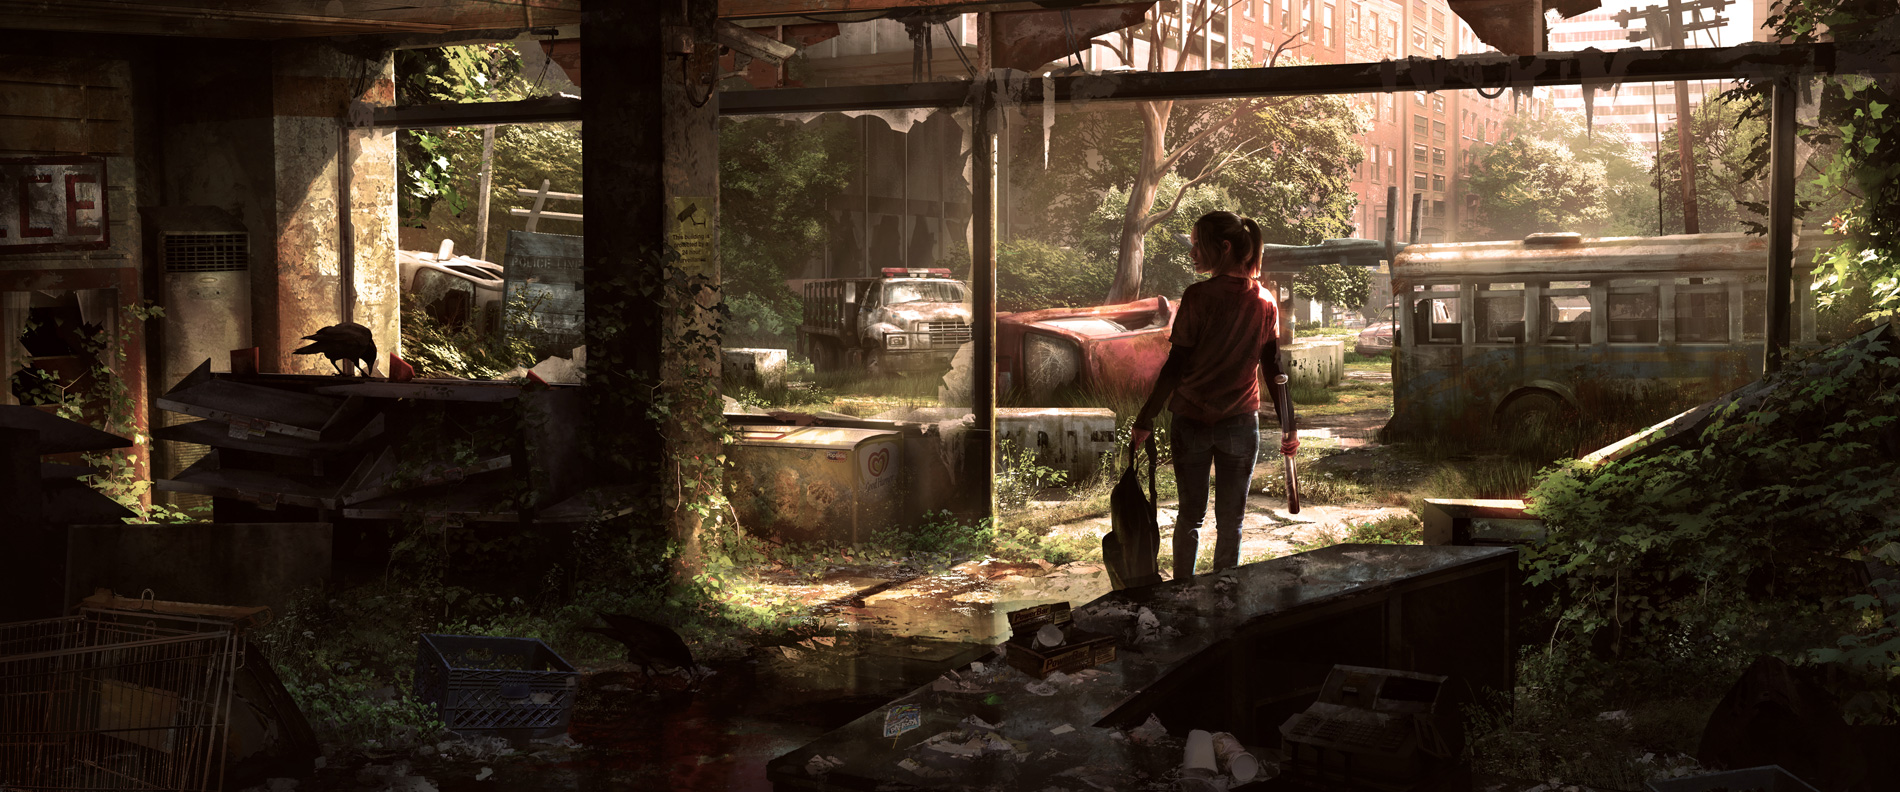 [تصویر:  The_Last_of_Us_Concept_Art_Crows_JS-01.jpg]